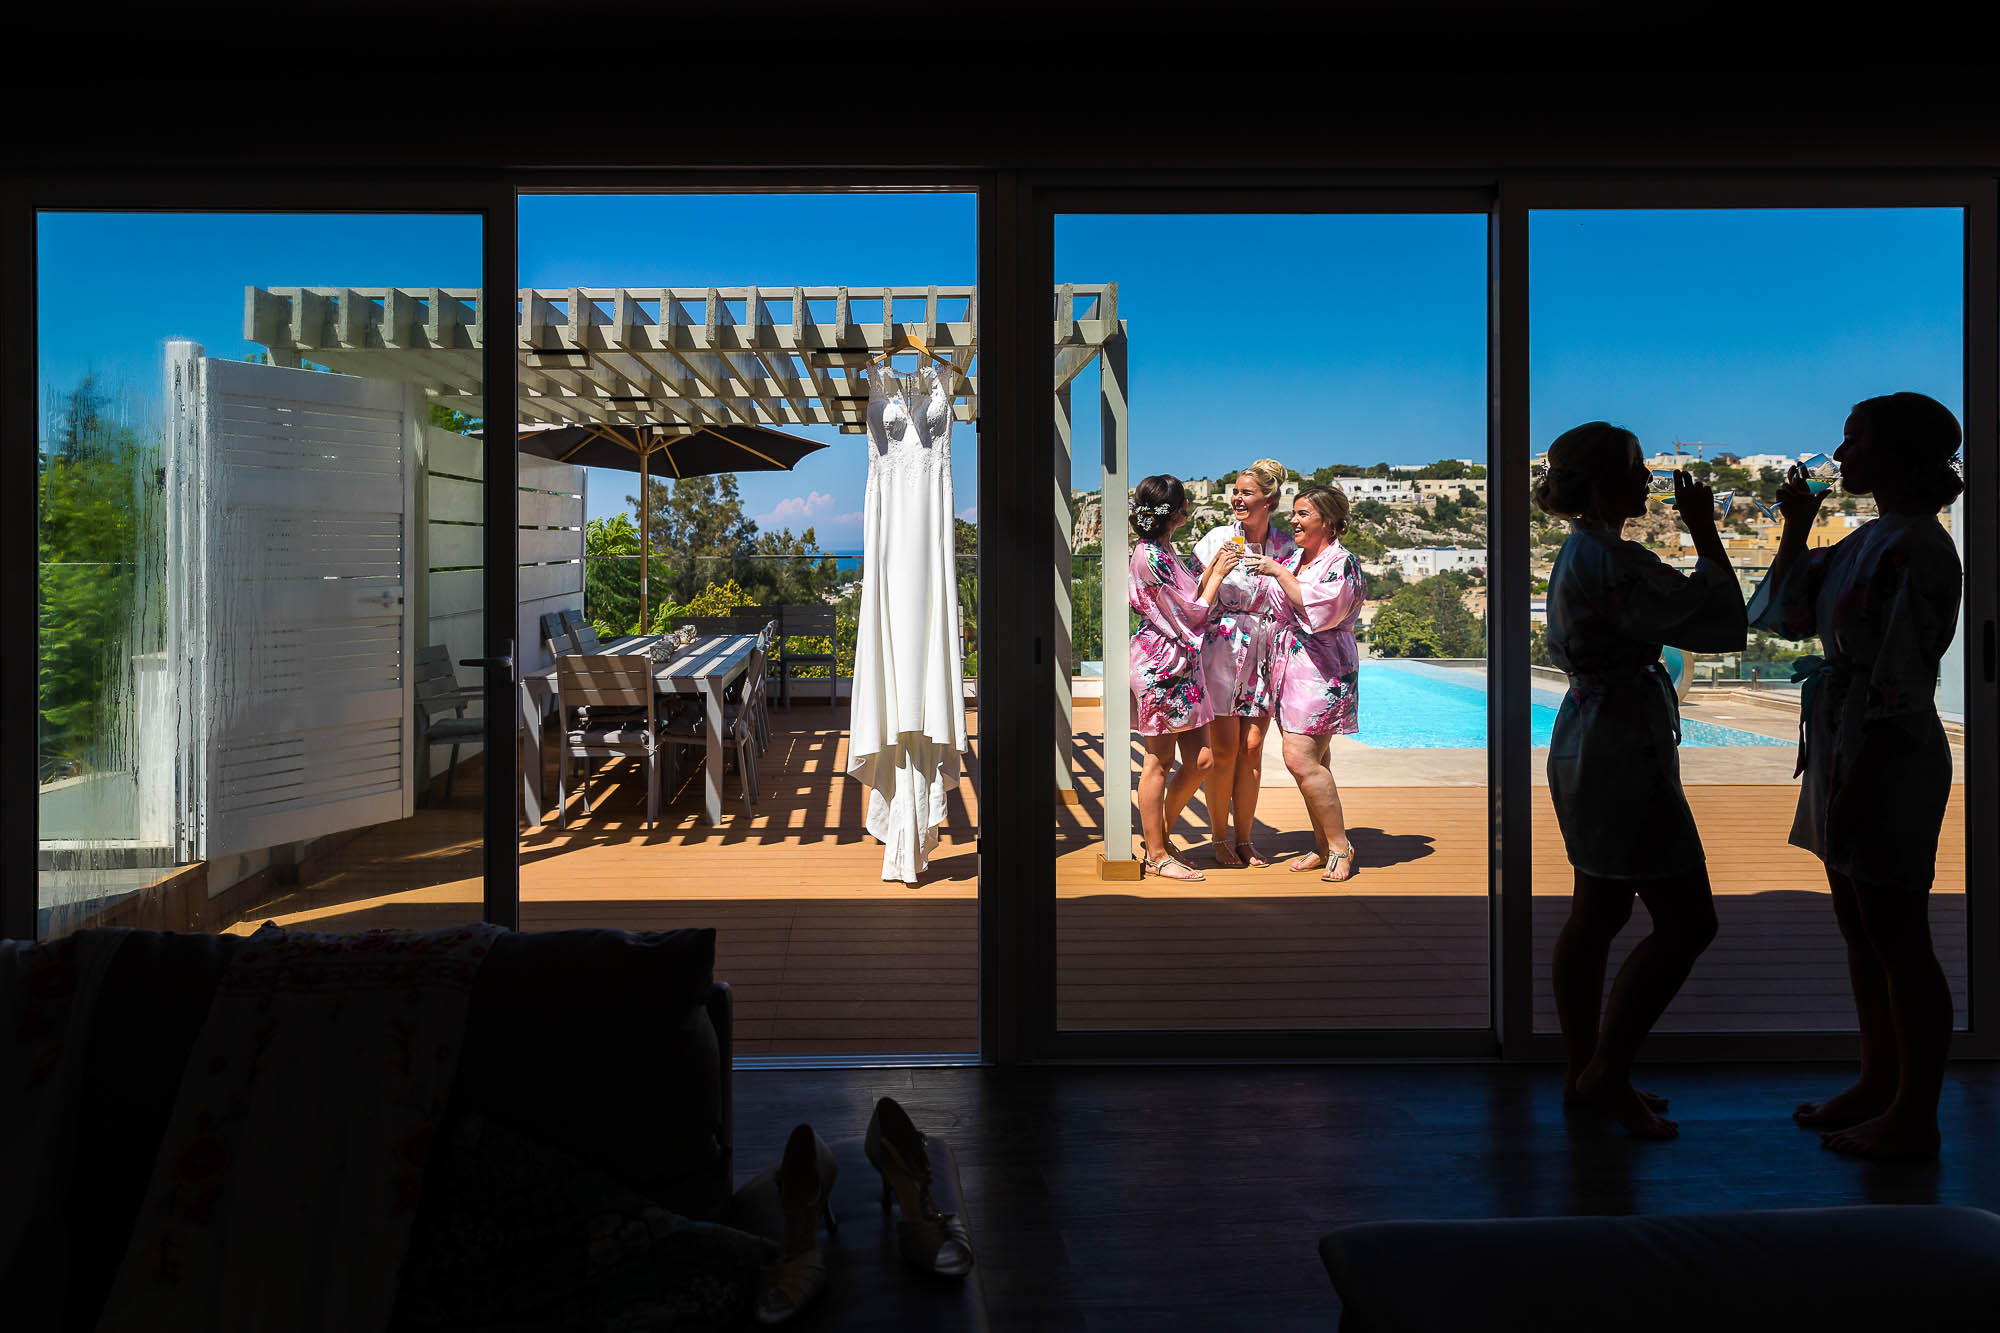 Bride enjoying a glass of champagne with her bridesmaids next to her villa's swimming pool. Photo by North East wedding photojournalist Elliot Nichol.